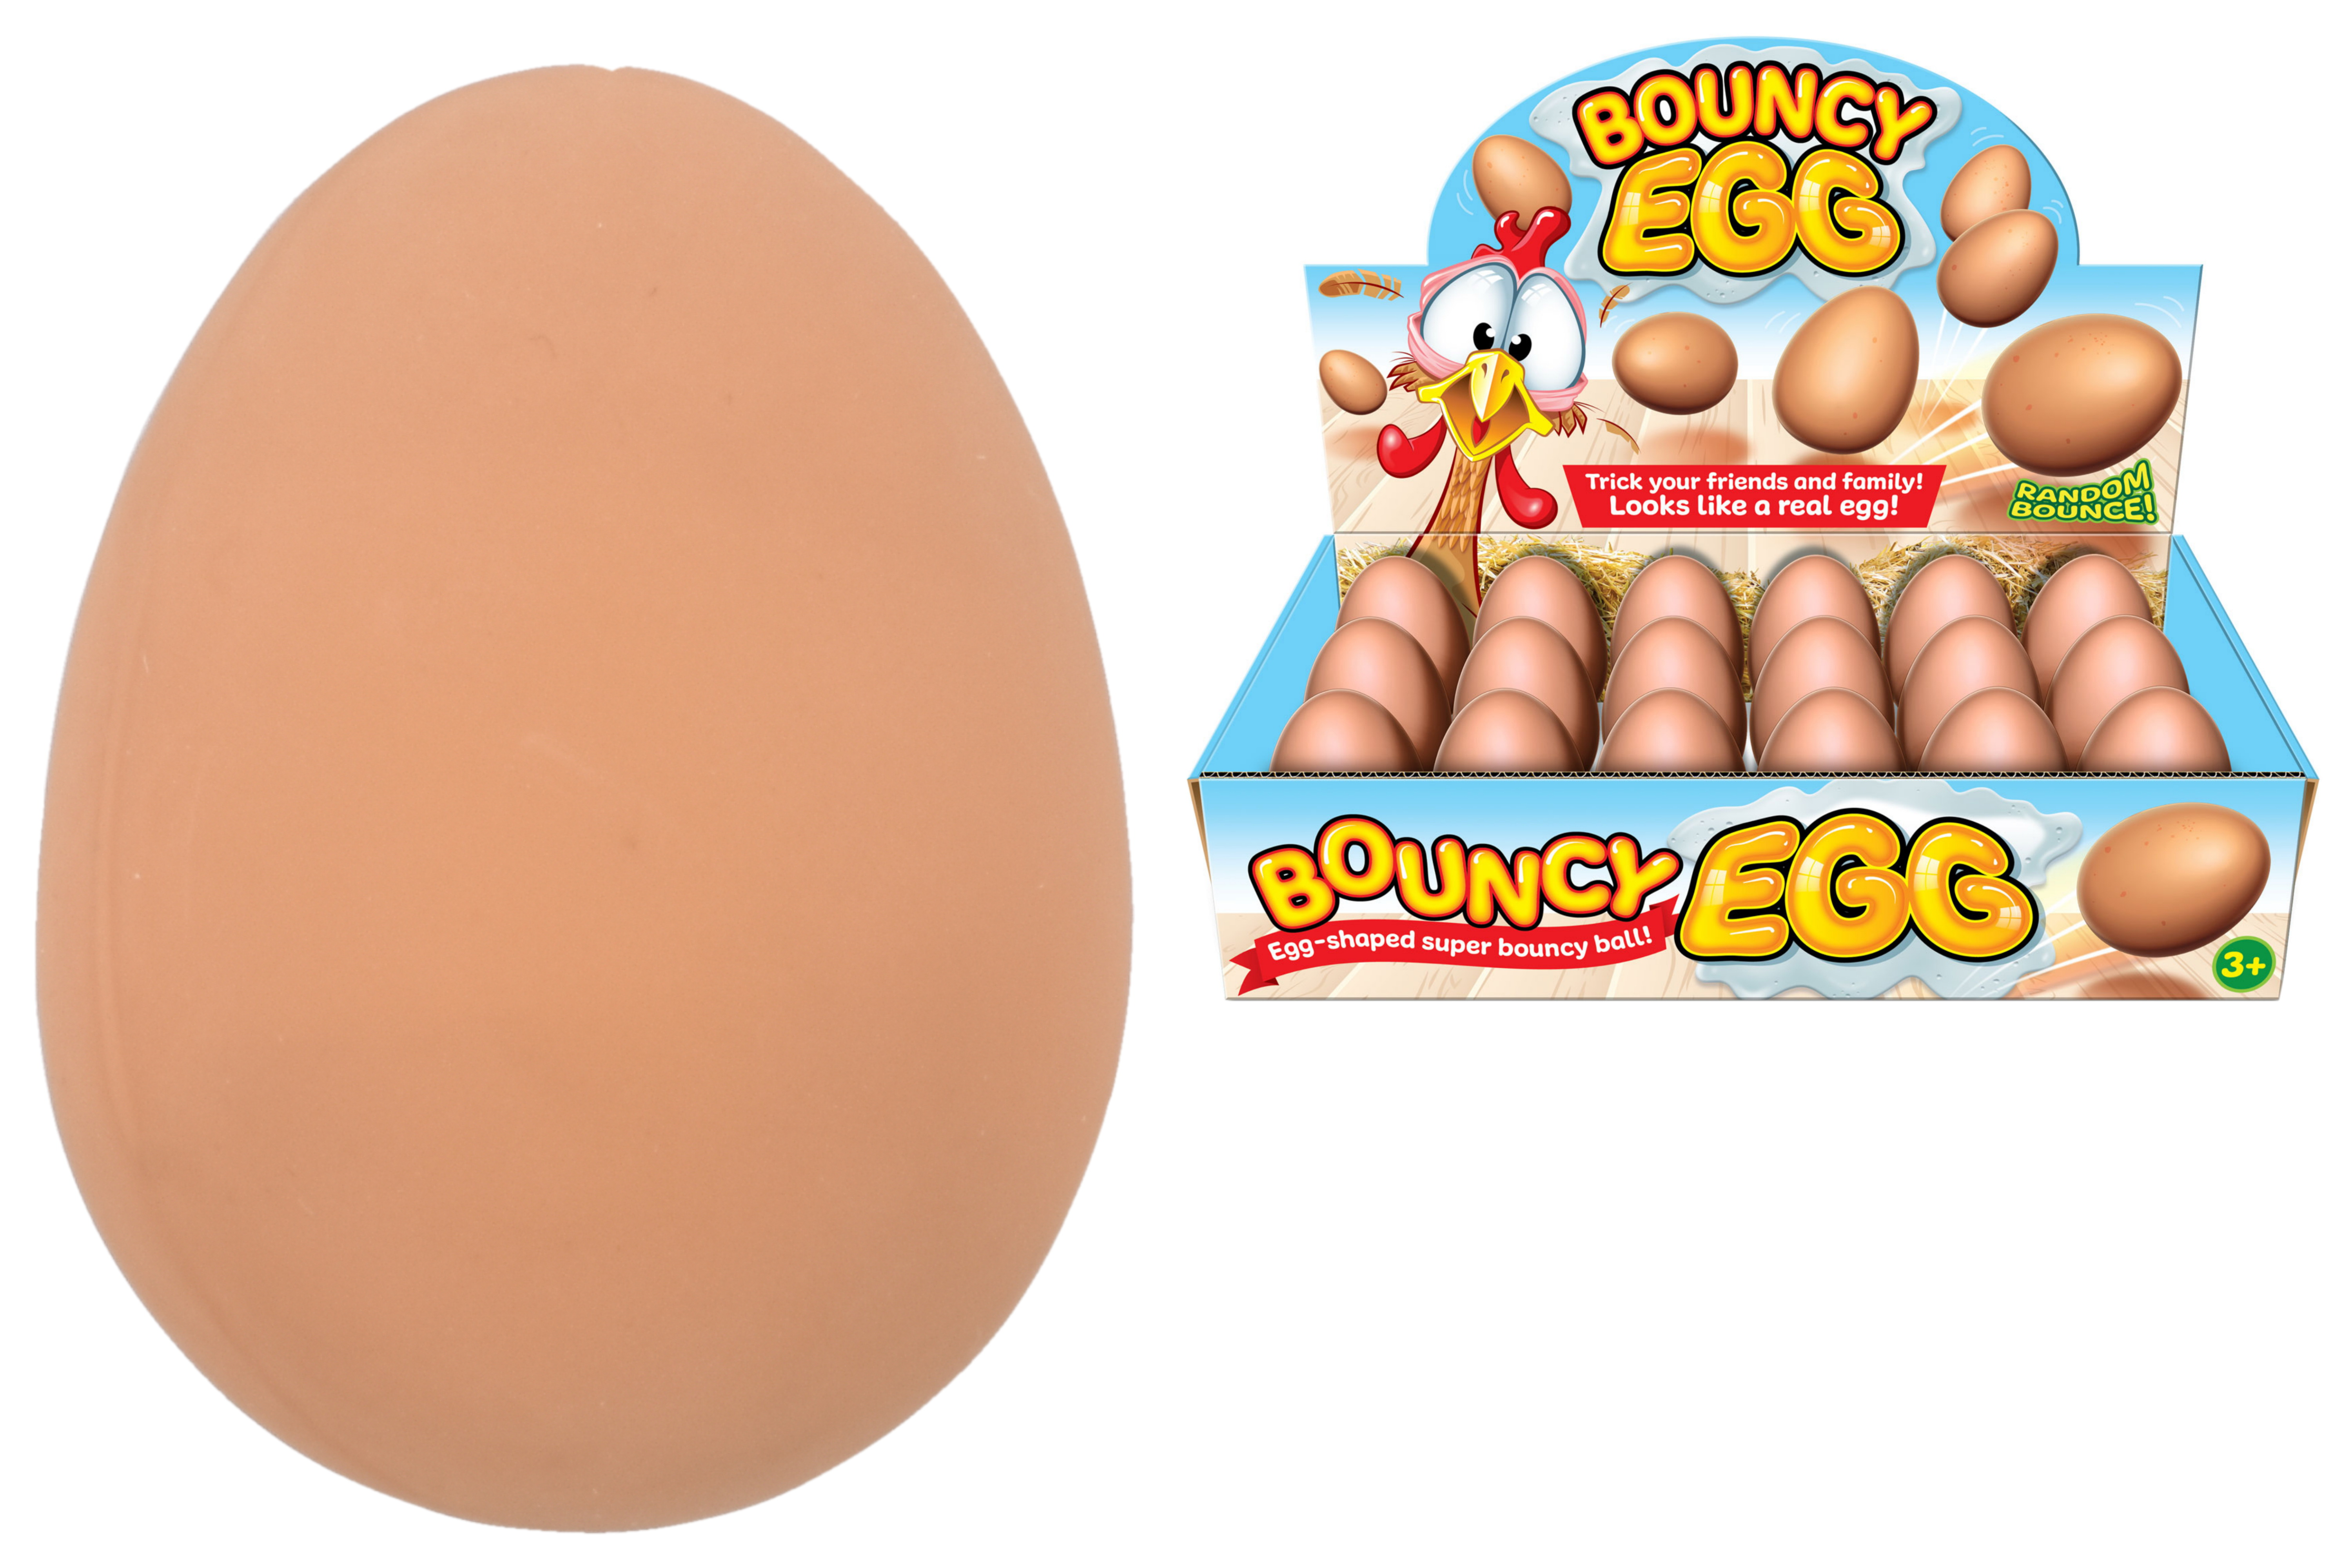 Egg Bounce Ball (56mm x 24mm) In Display Box